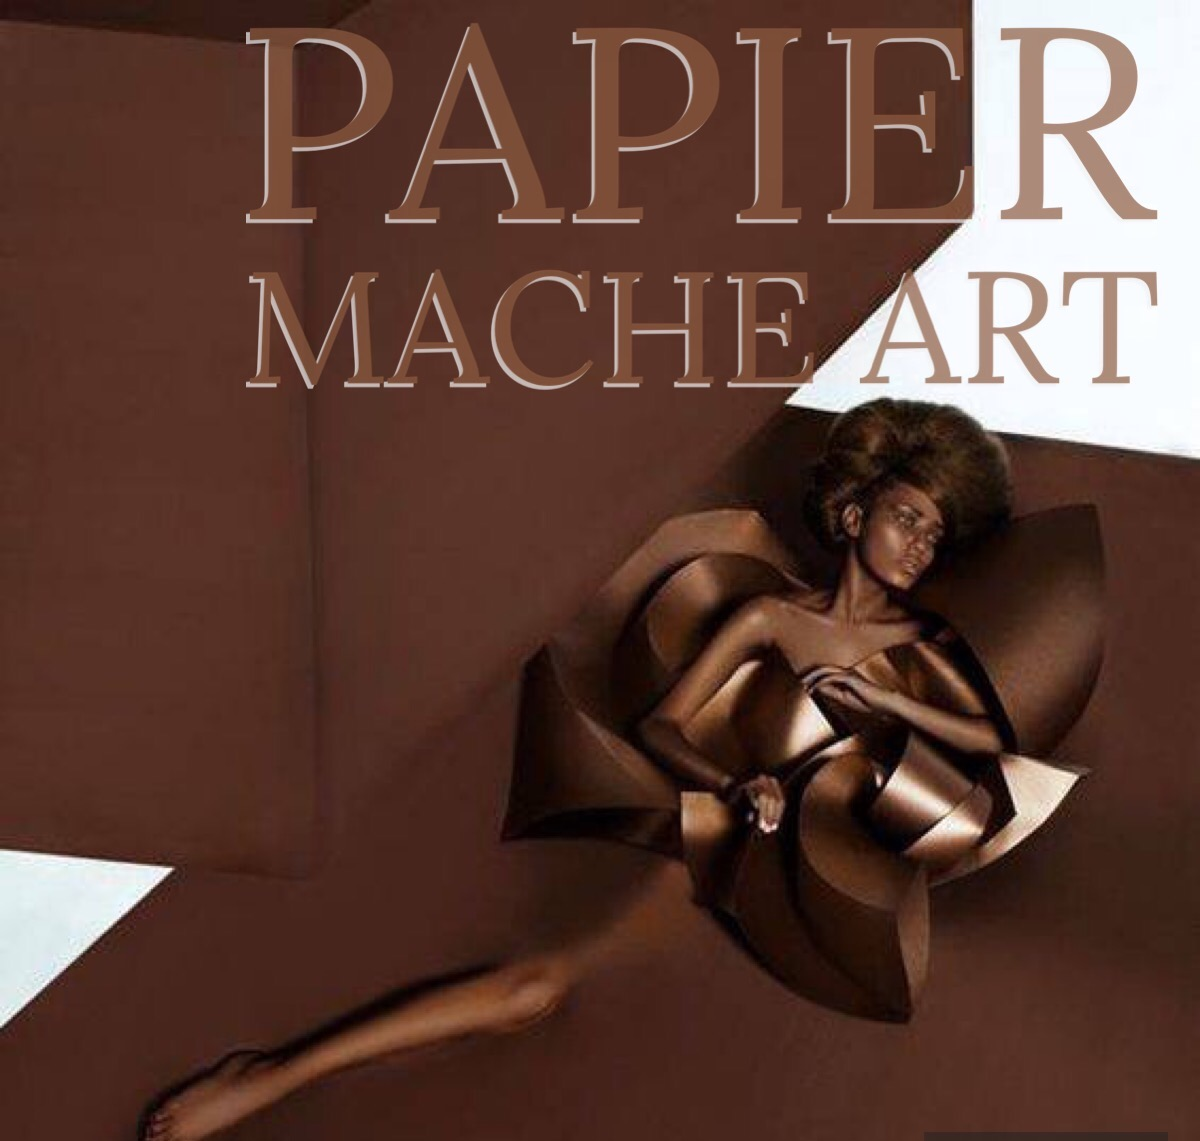 Papier Mache Art in Fashion